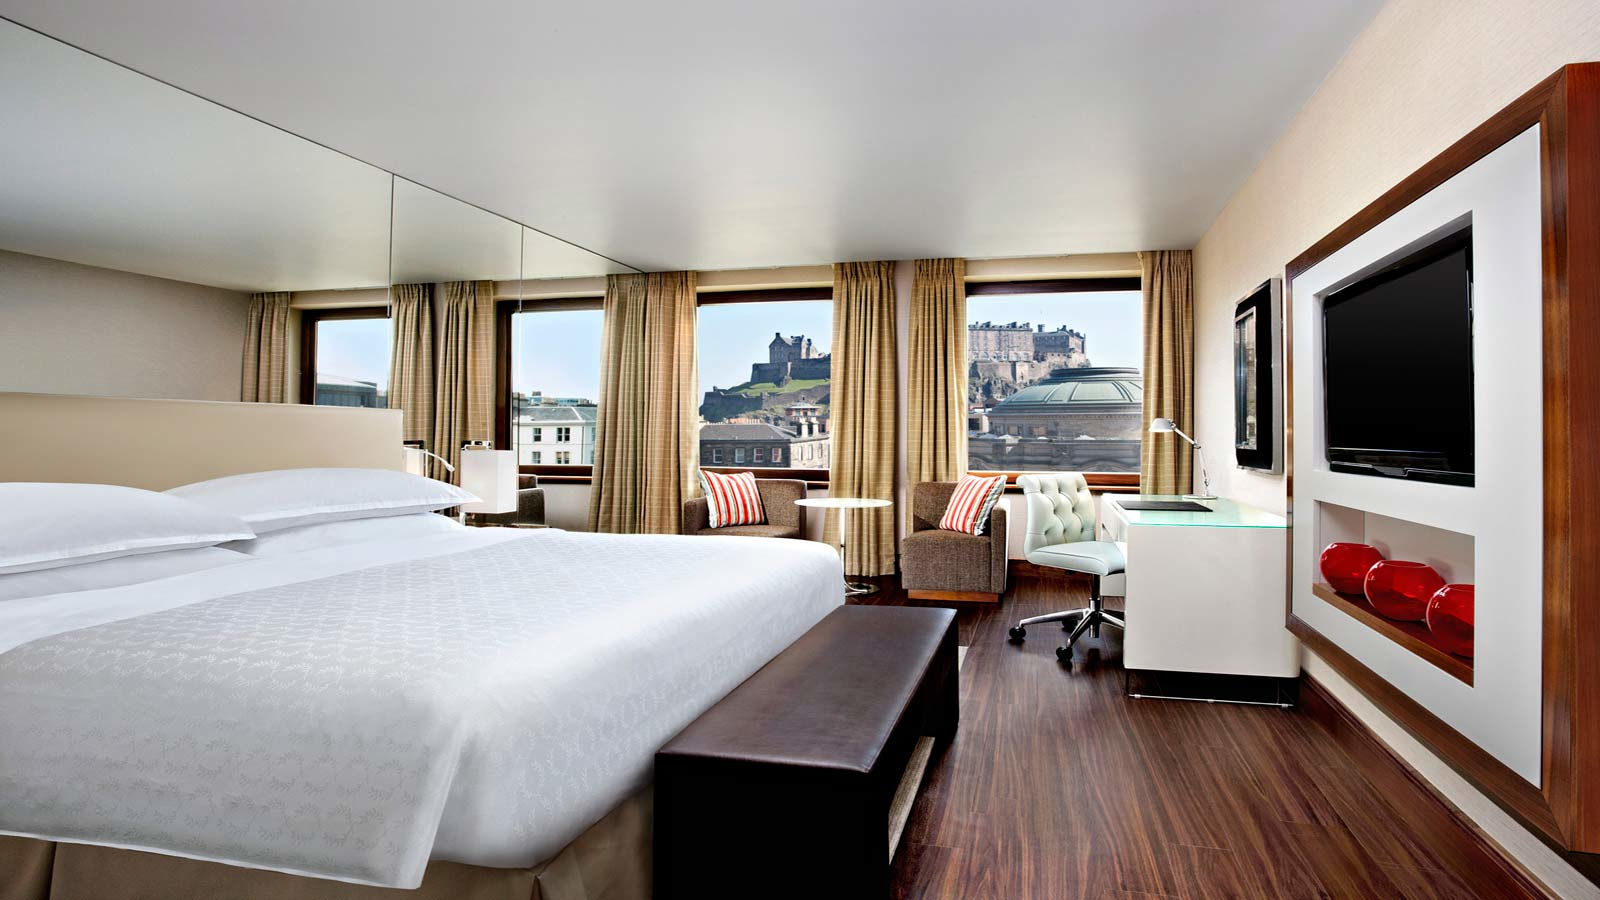 Luxurious hotel room with views of Edinburgh Castle